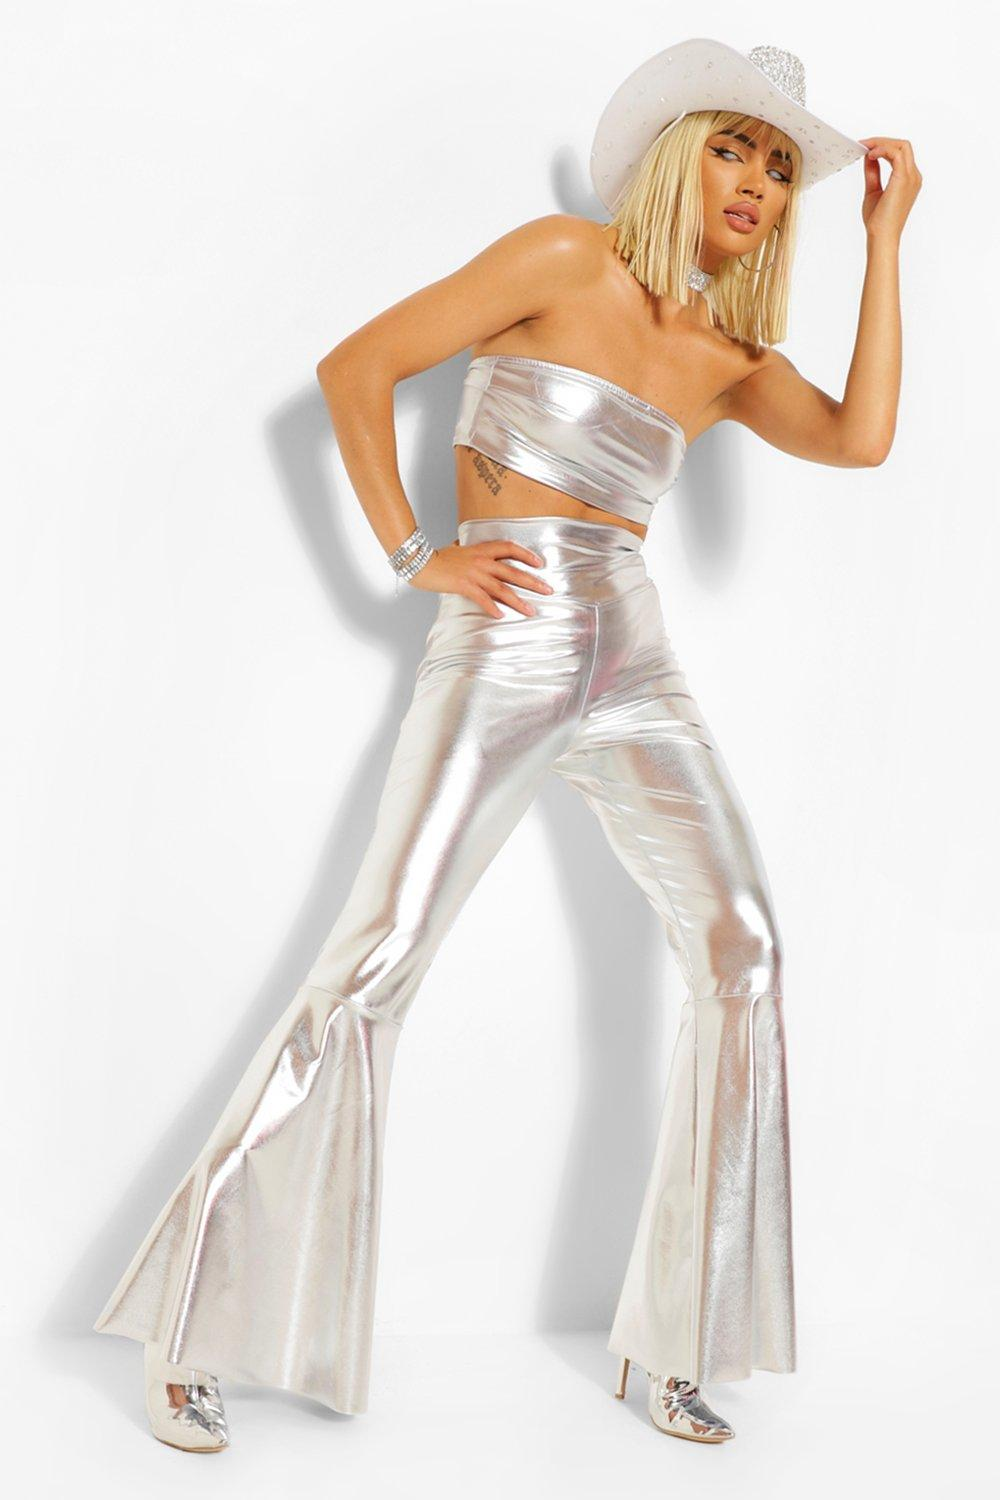 70s Clothes | Hippie Clothes & Outfits Womens Halloween Metallic Extreme Flare - Grey - 12 $19.60 AT vintagedancer.com